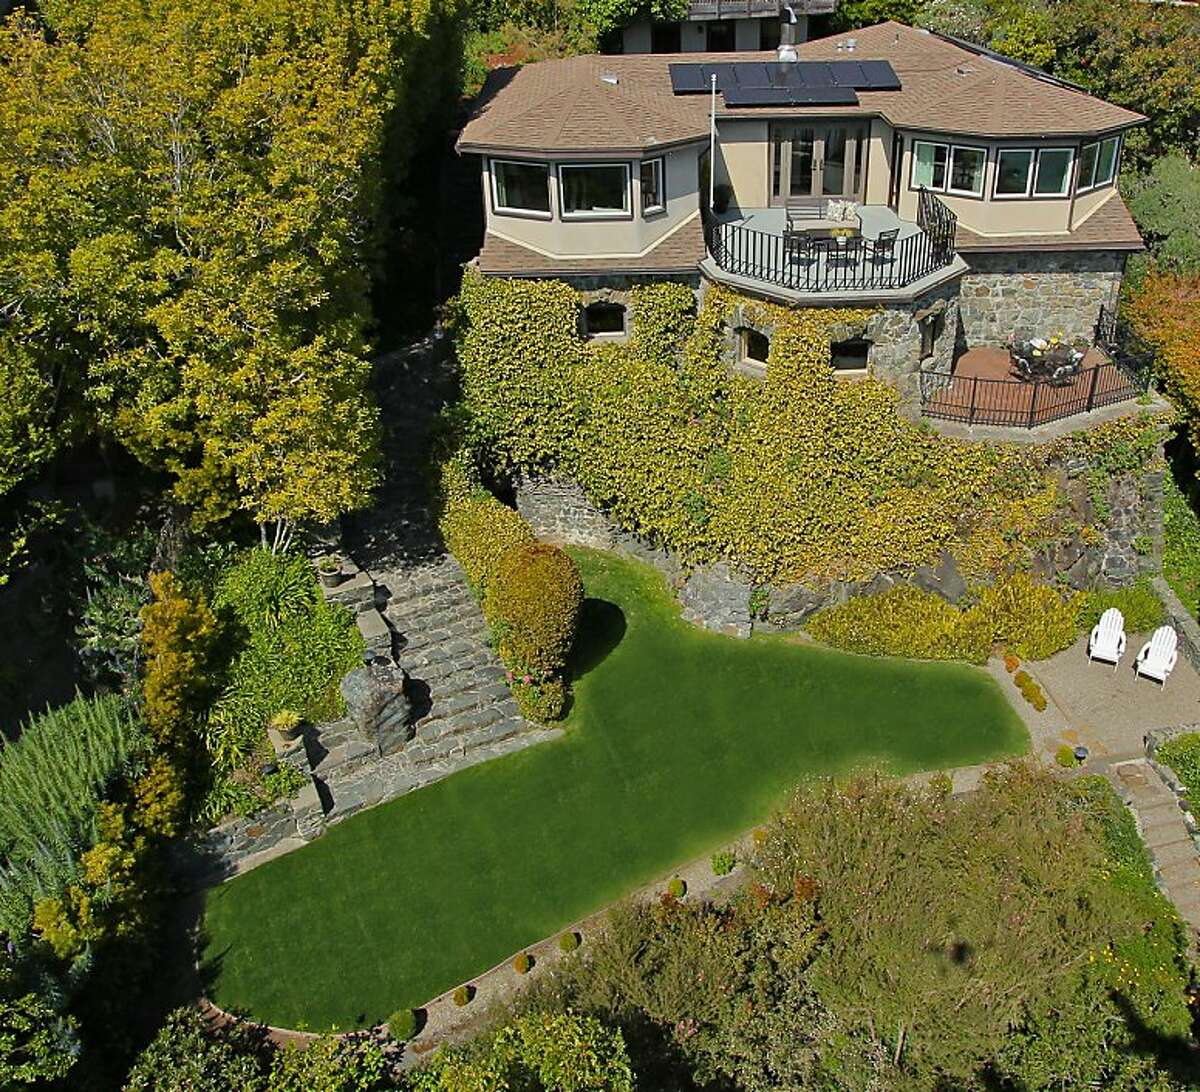 An aerial view of 34 Linda Vista Ave. in Tiburon, which was originally built in the 19th Century.